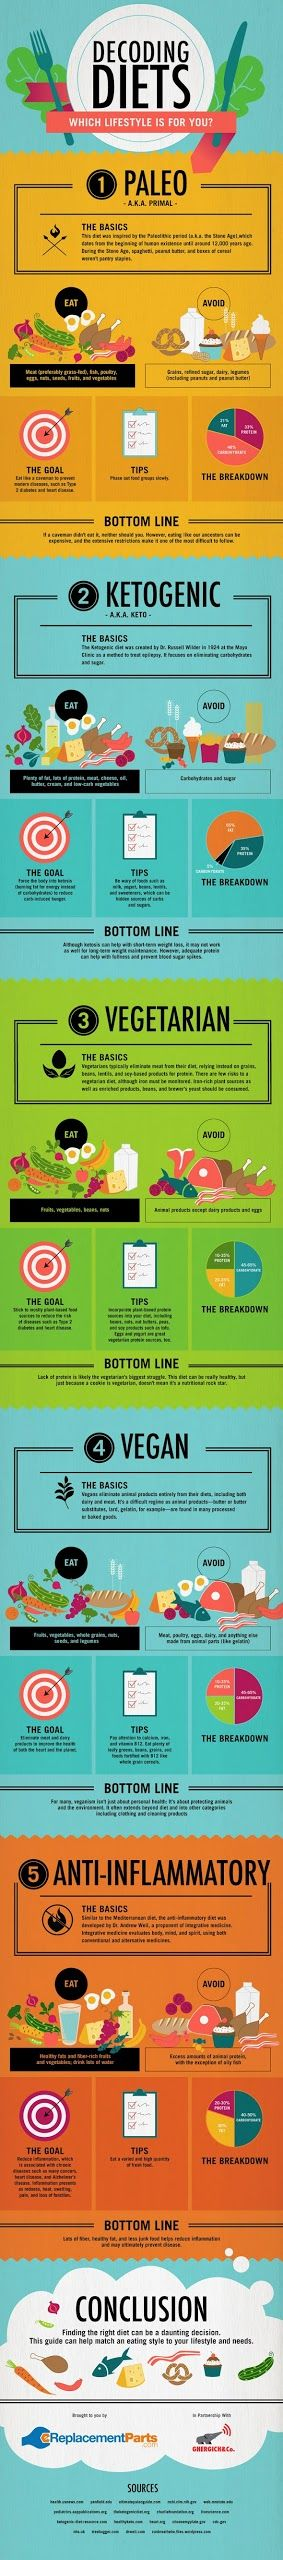 Paleo, Ketogenic, Vegetarian, Vegan, Anti-Inflammatory - Which one is right for you and your health? - Decoding Diets [Infographic]